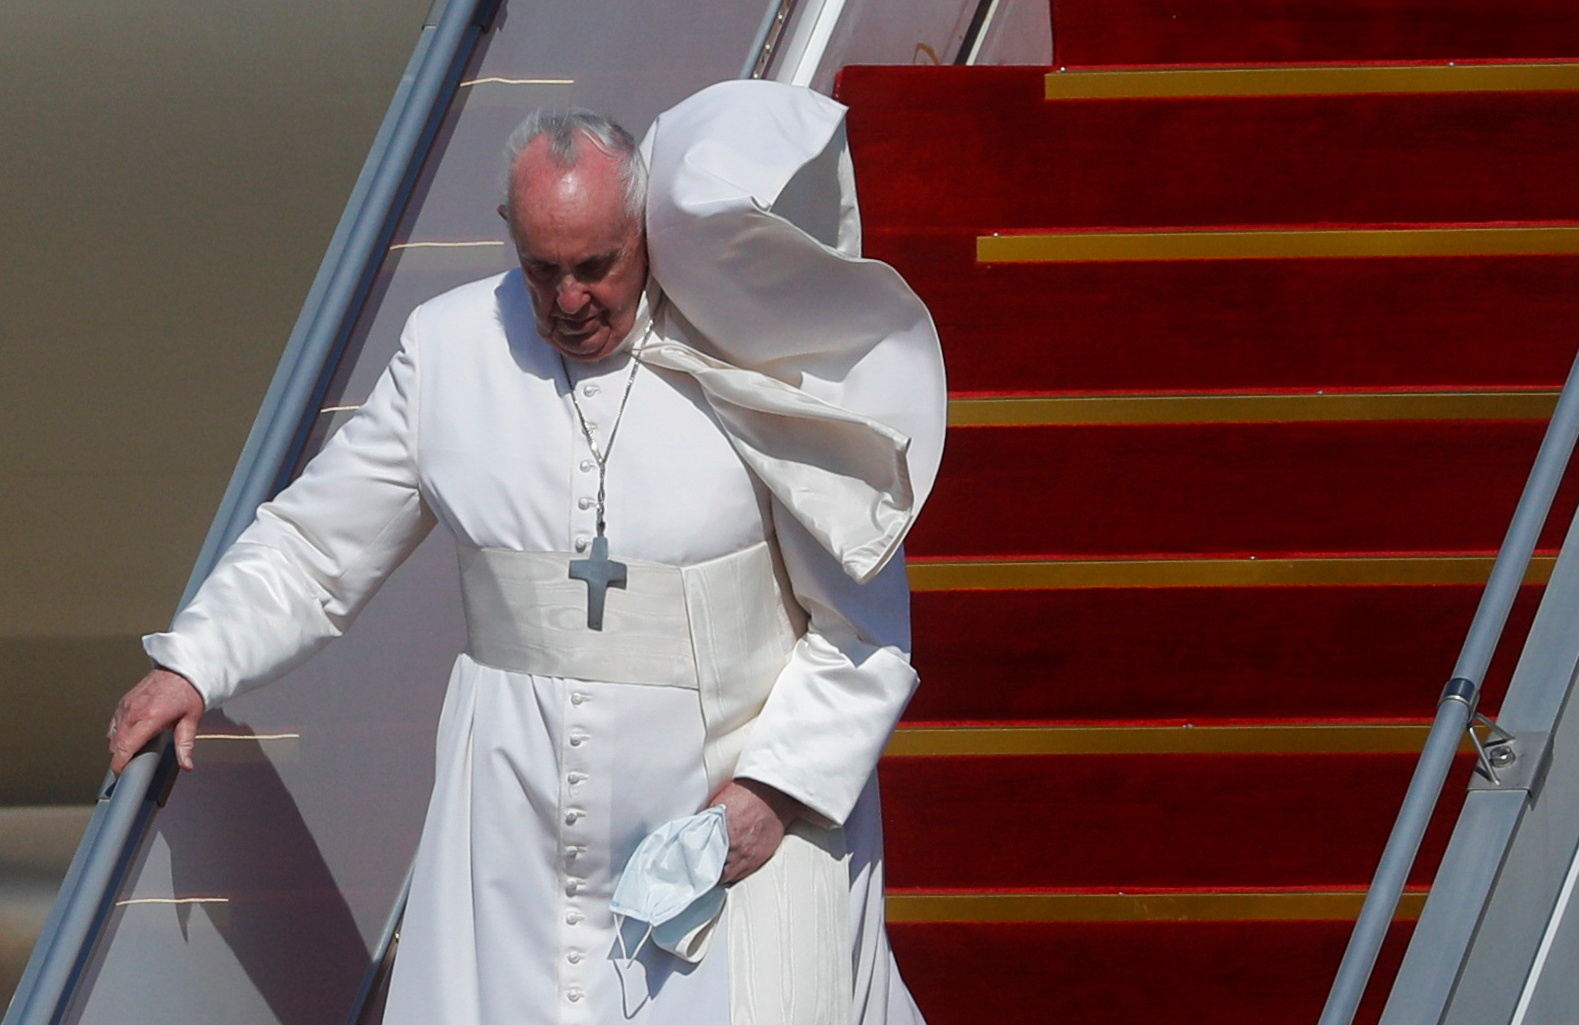 Pope Francis disembarks a plane as he arrives at Baghdad International Airport where a welcoming ceremony is held to start his historic tour in Baghdad, Iraq, March 5, 2021. REUTERS/Yara Nardi